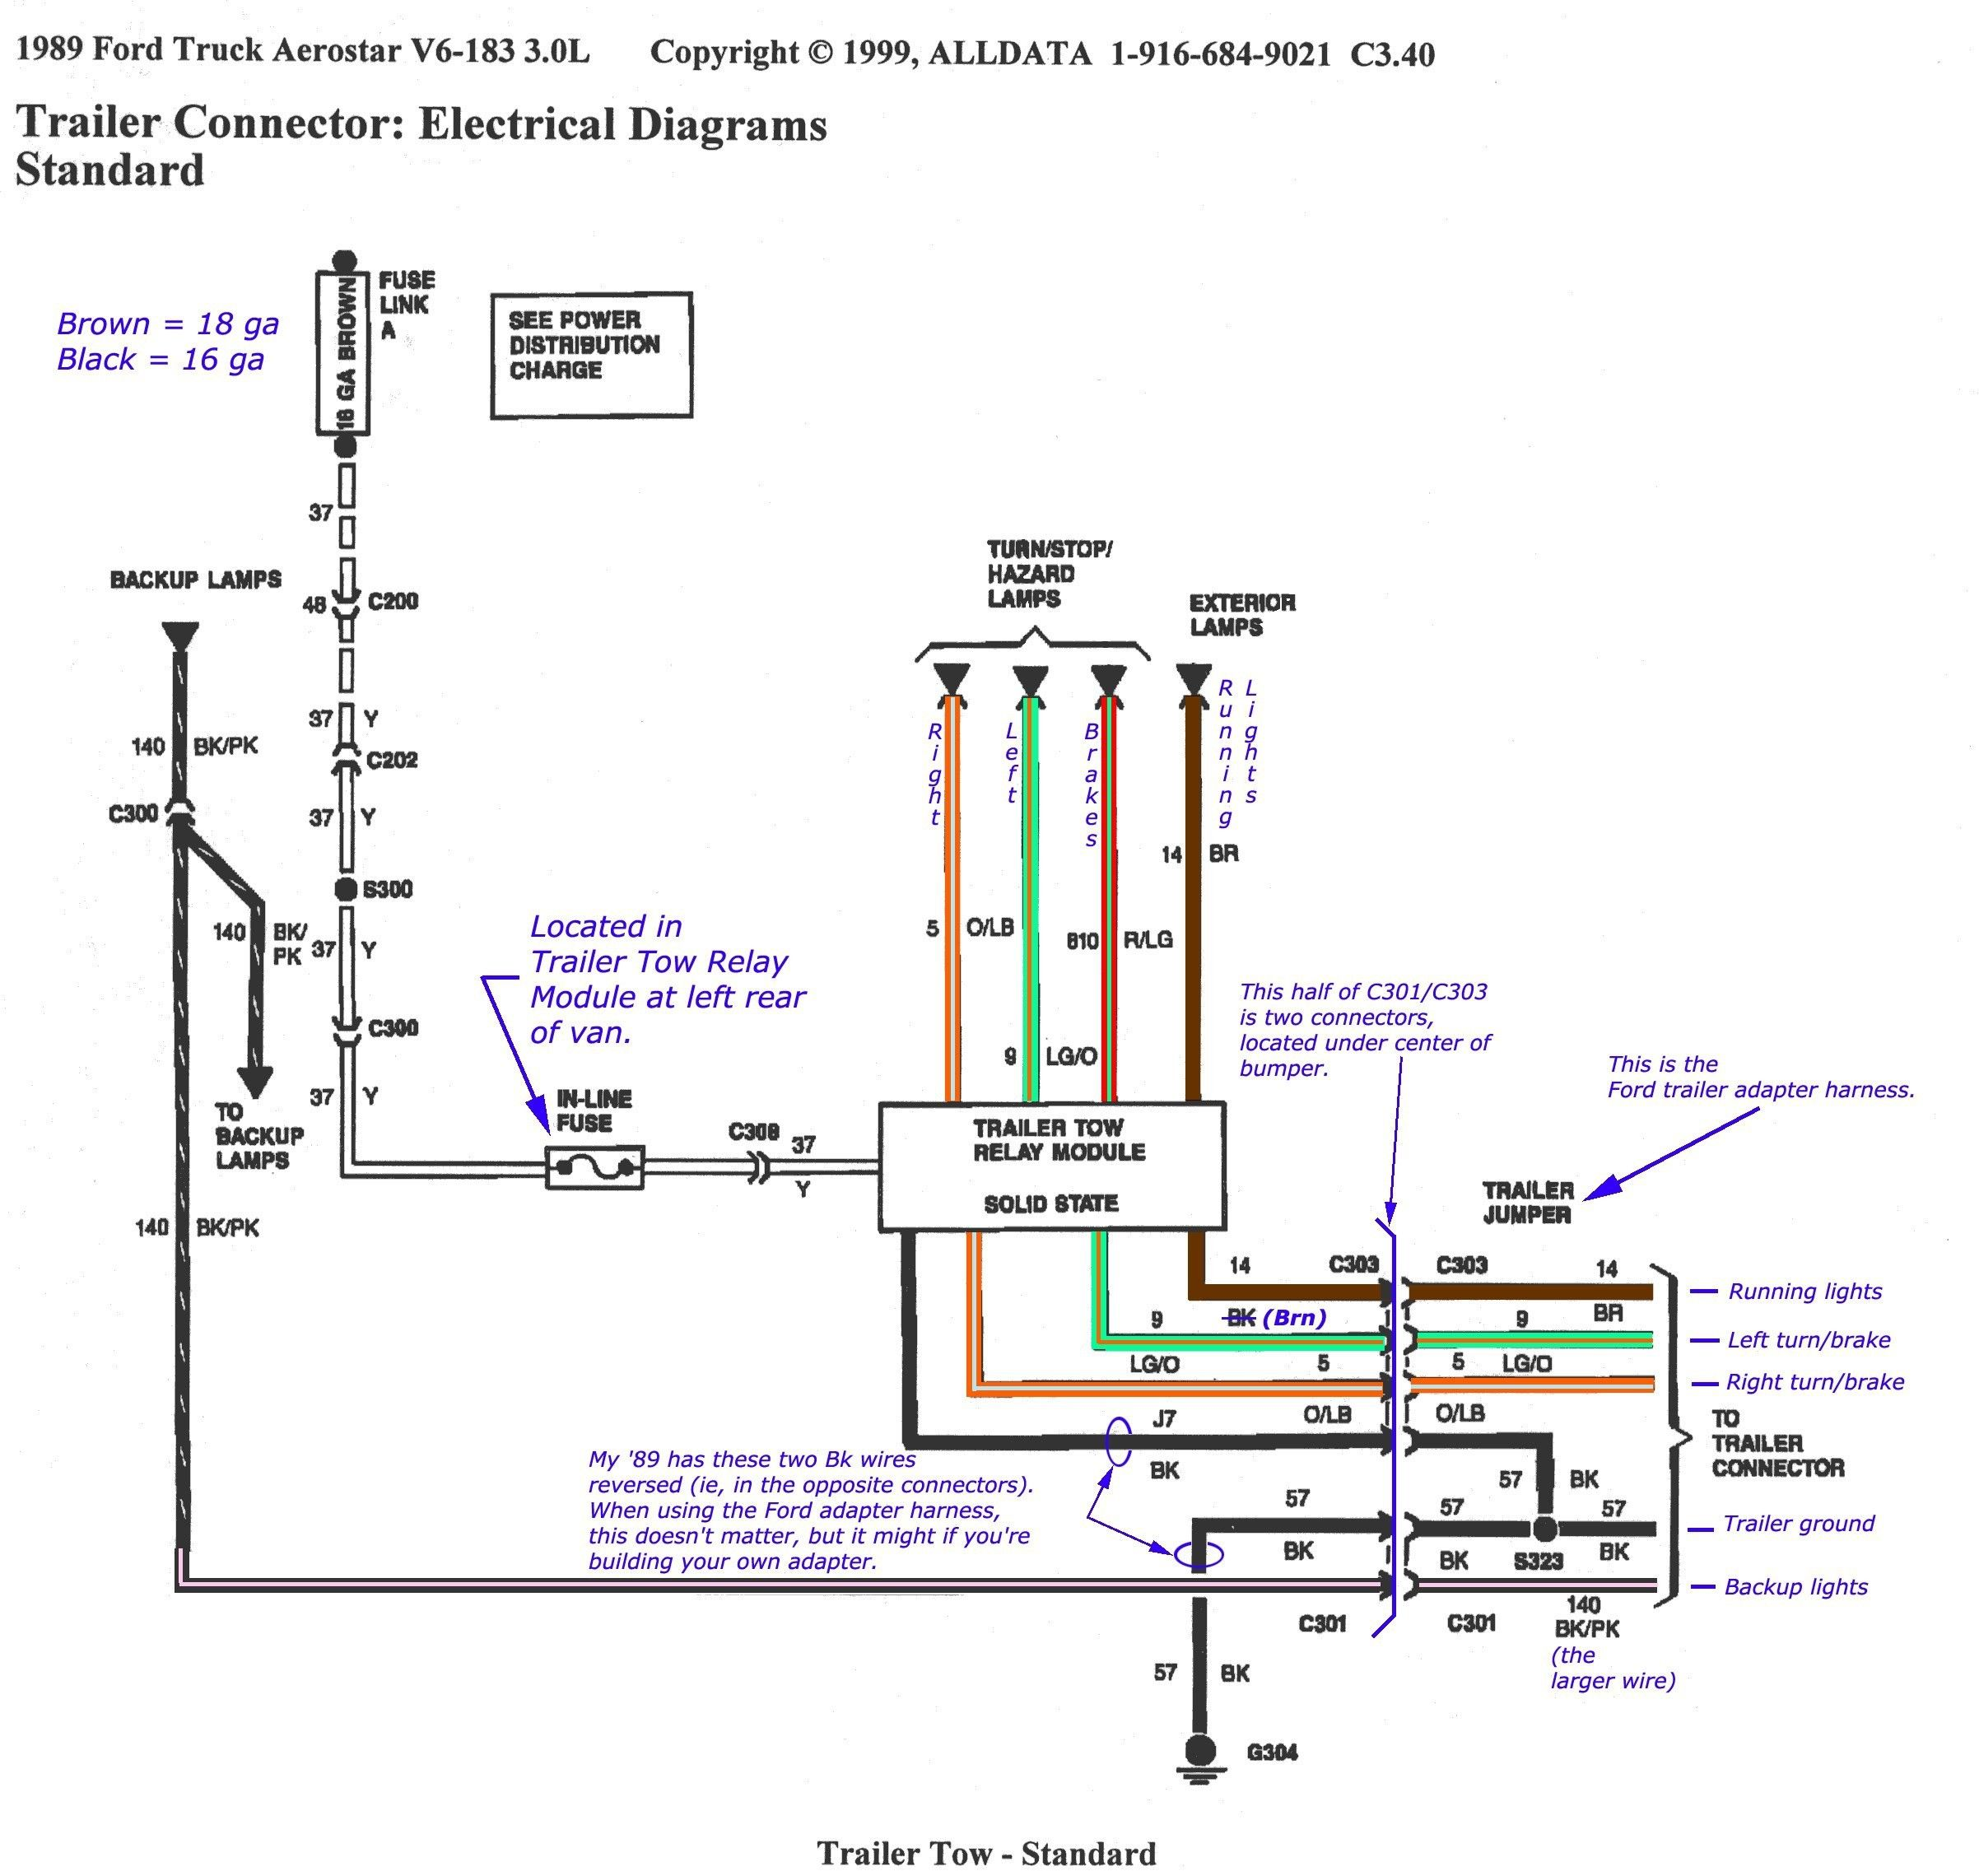 F350 Trailer Plug Wiring Diagram - Kawasaki 360 Prairie Wiring Diagram for Wiring  Diagram SchematicsWiring Diagram Schematics